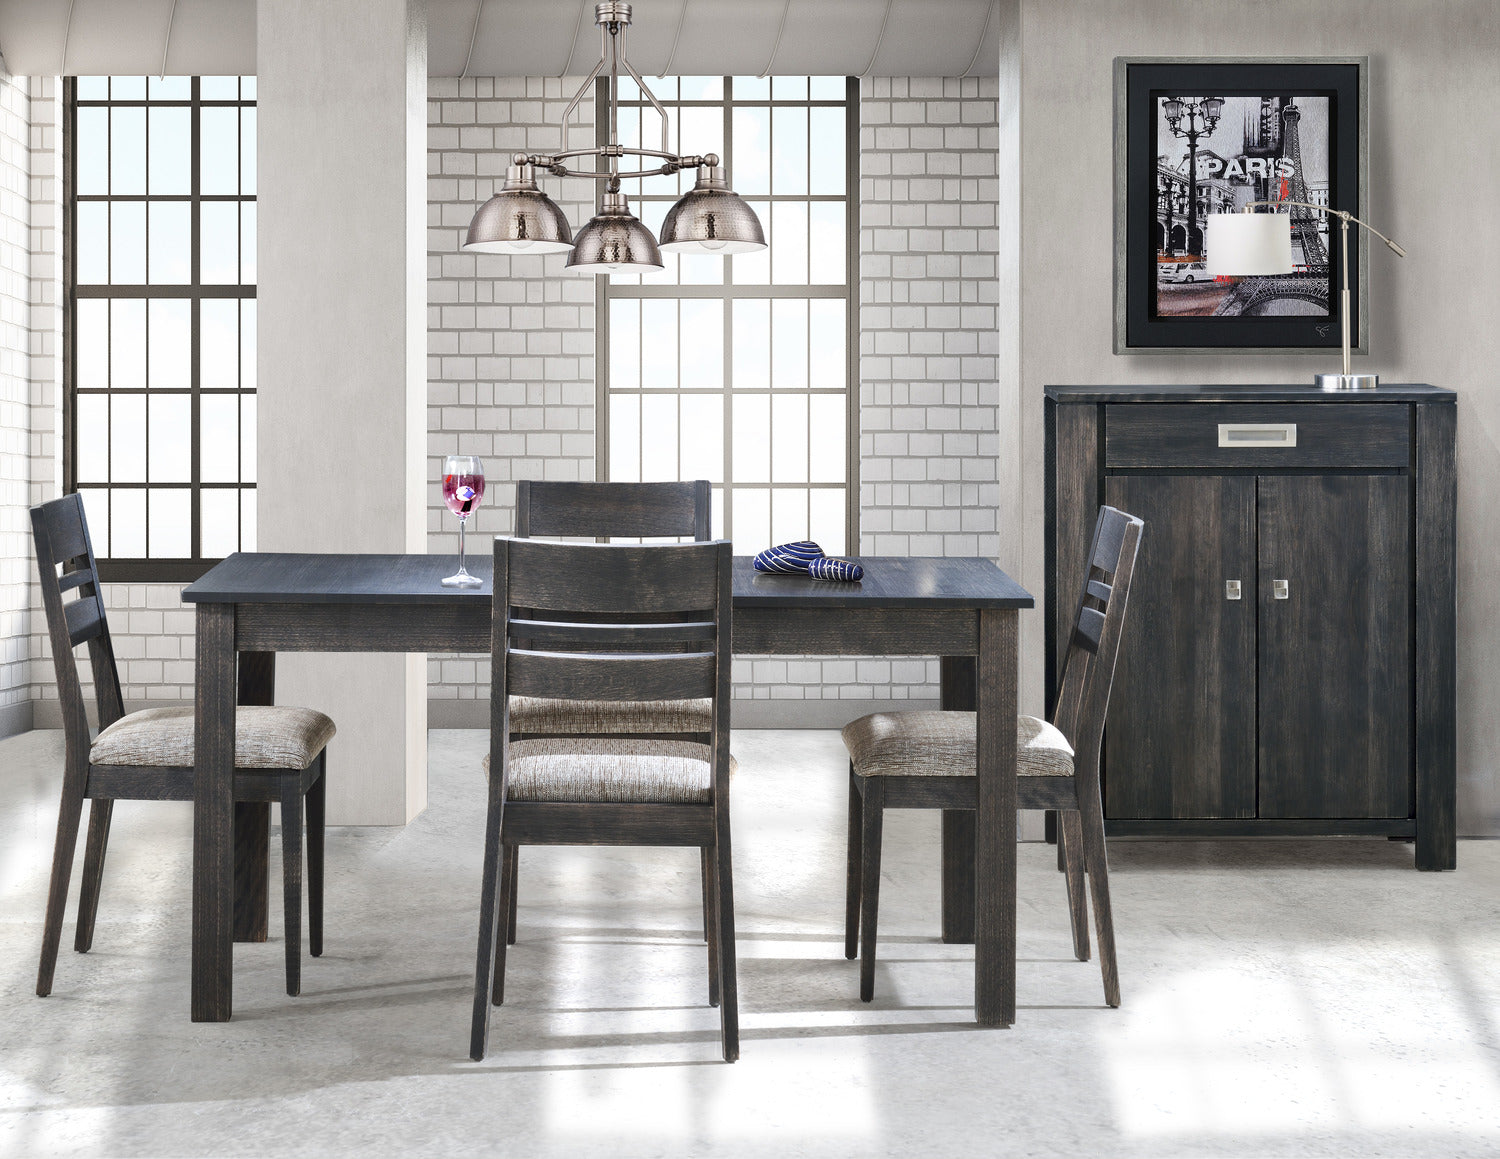 Sorel 7 Piece Dining Room Set With 2 Table Leaves